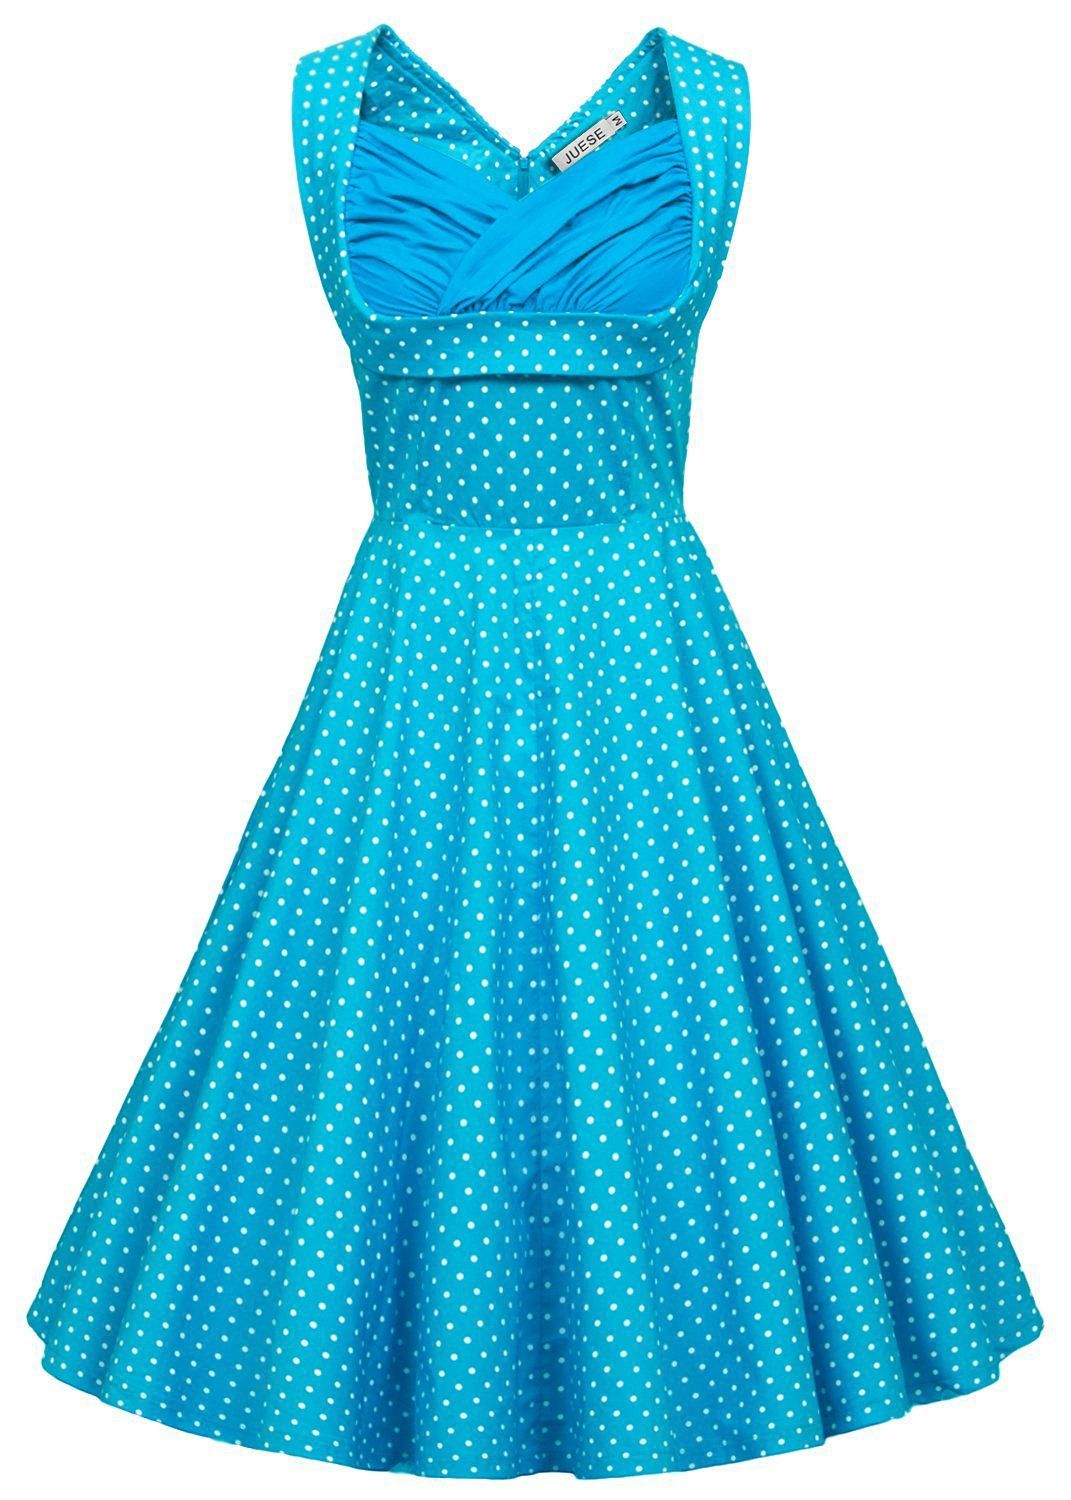 JUESE Women\'s Vintage 60s Prom or Homecoming Swing Dress: Amazon ...